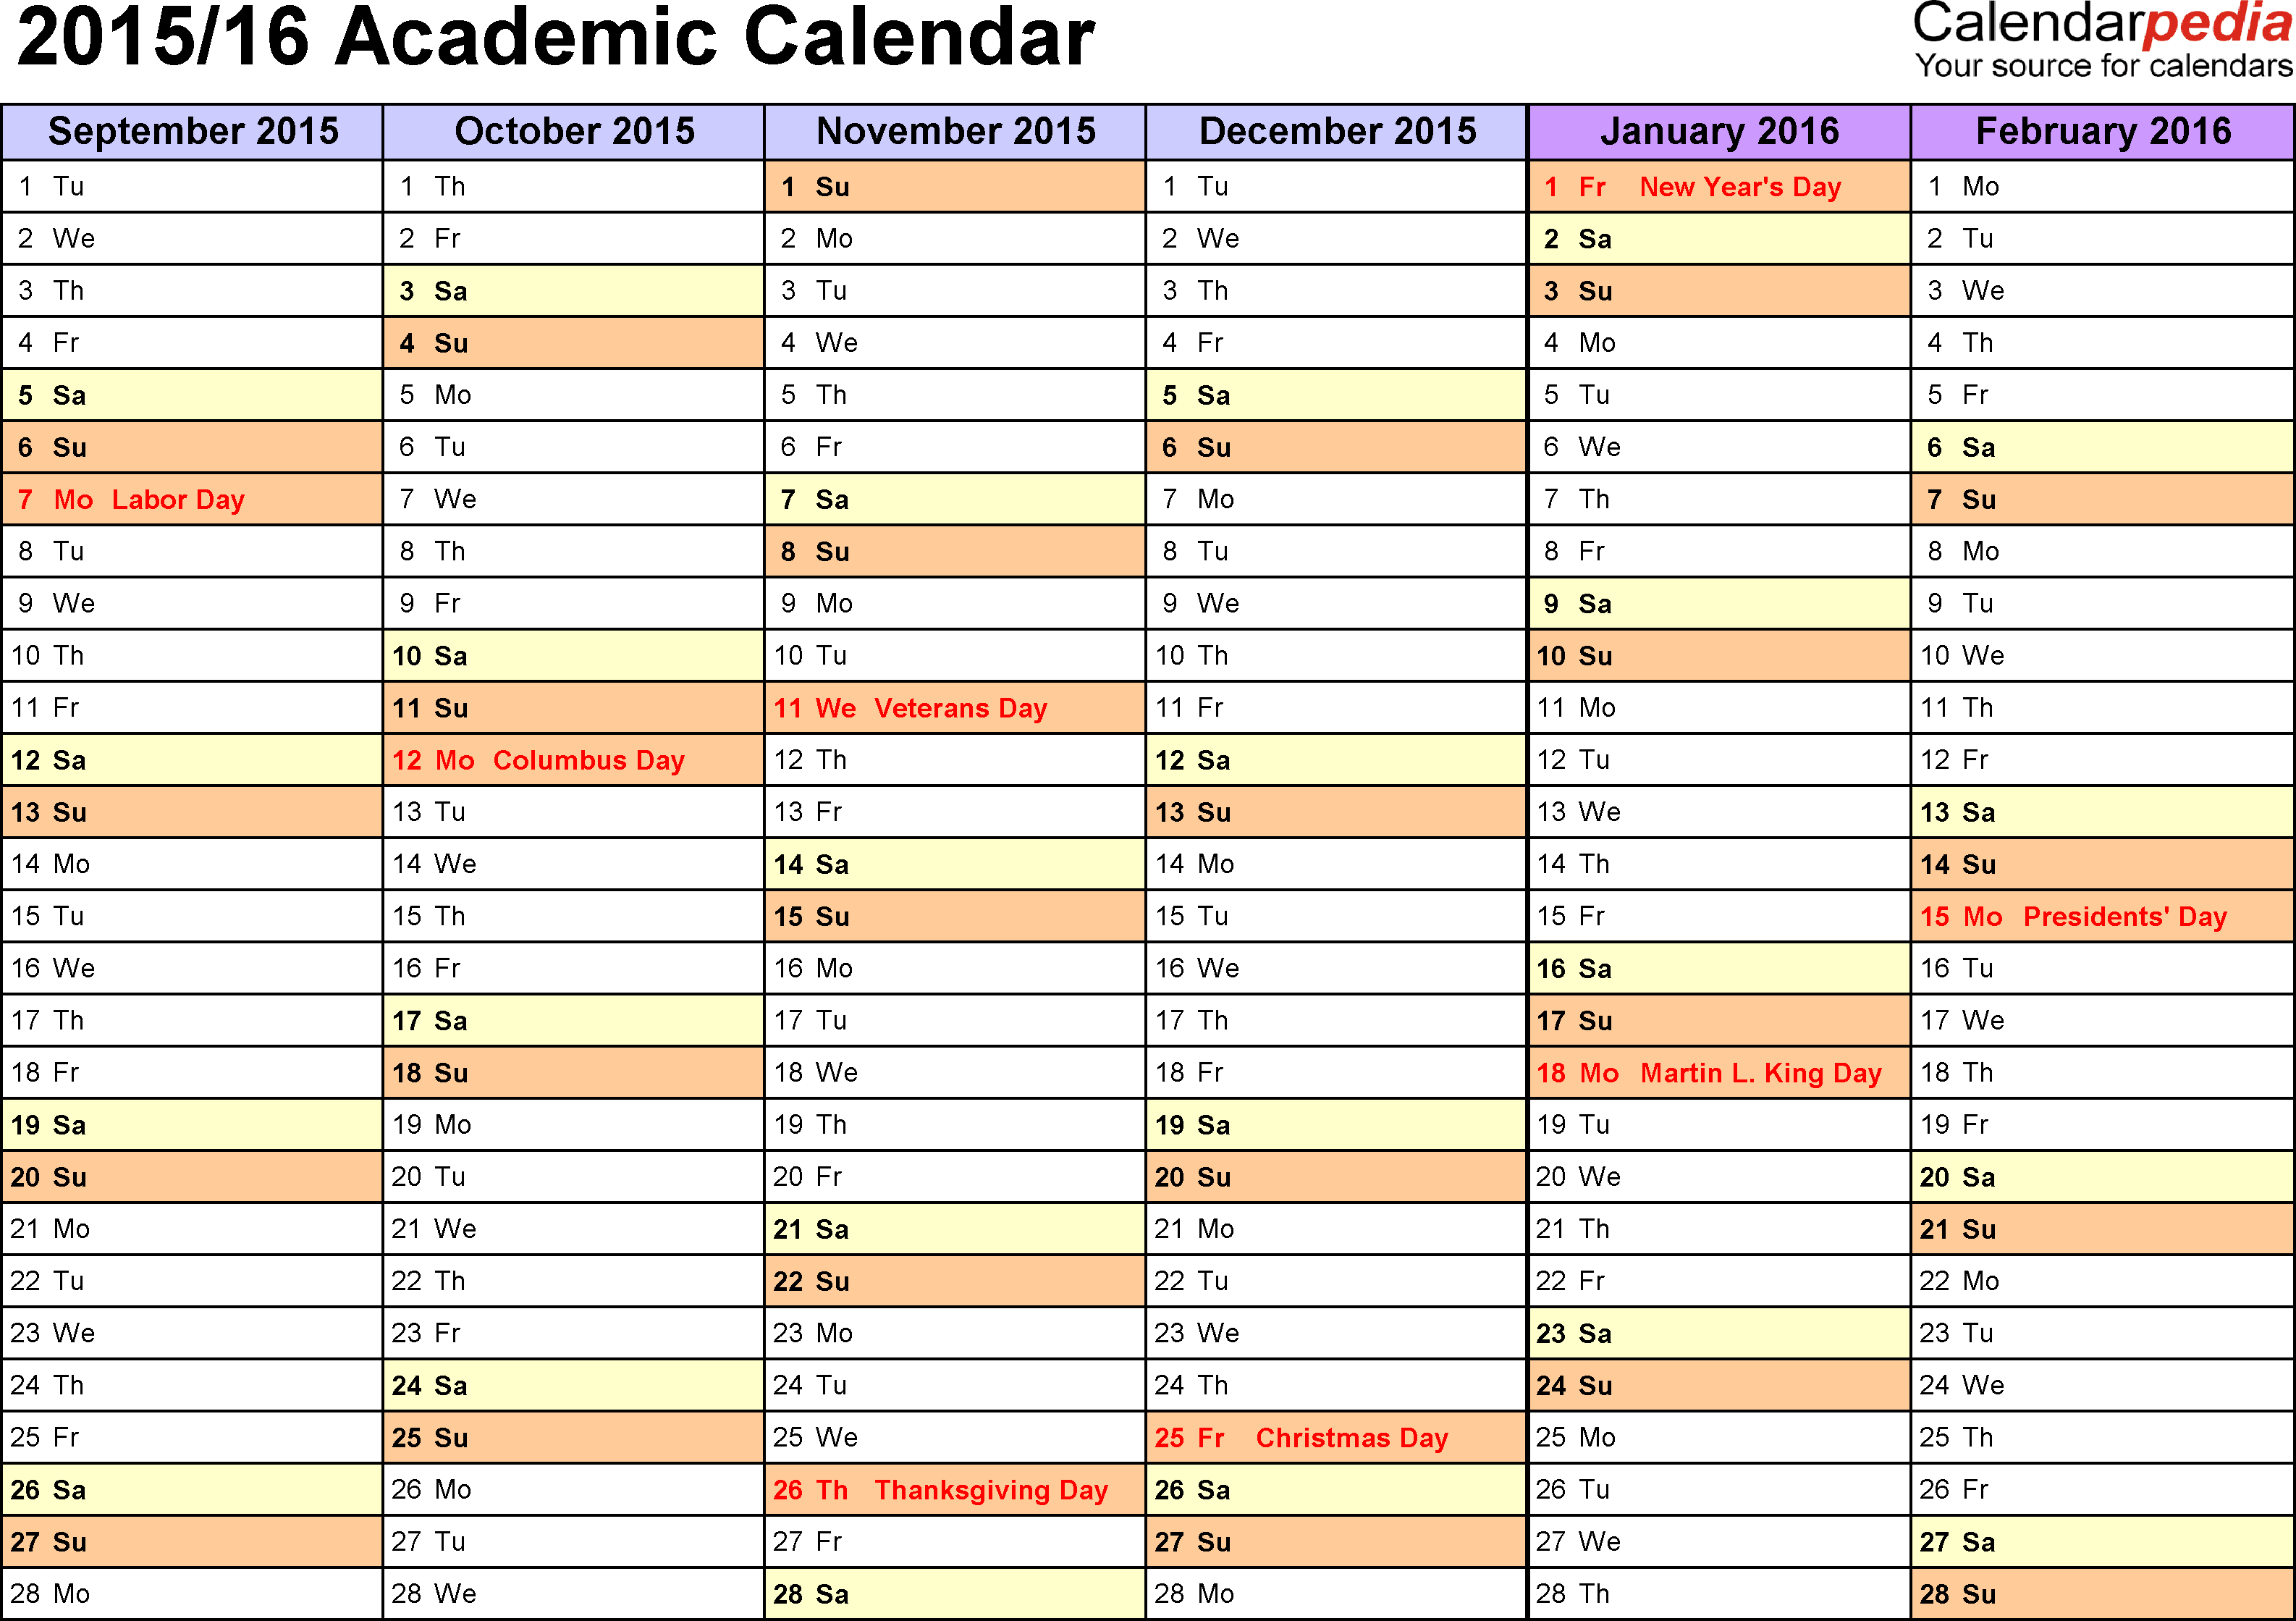 Template 2: Academic calendar 2015/16 for PDF, landscape orientation, months horizontally, 2 pages